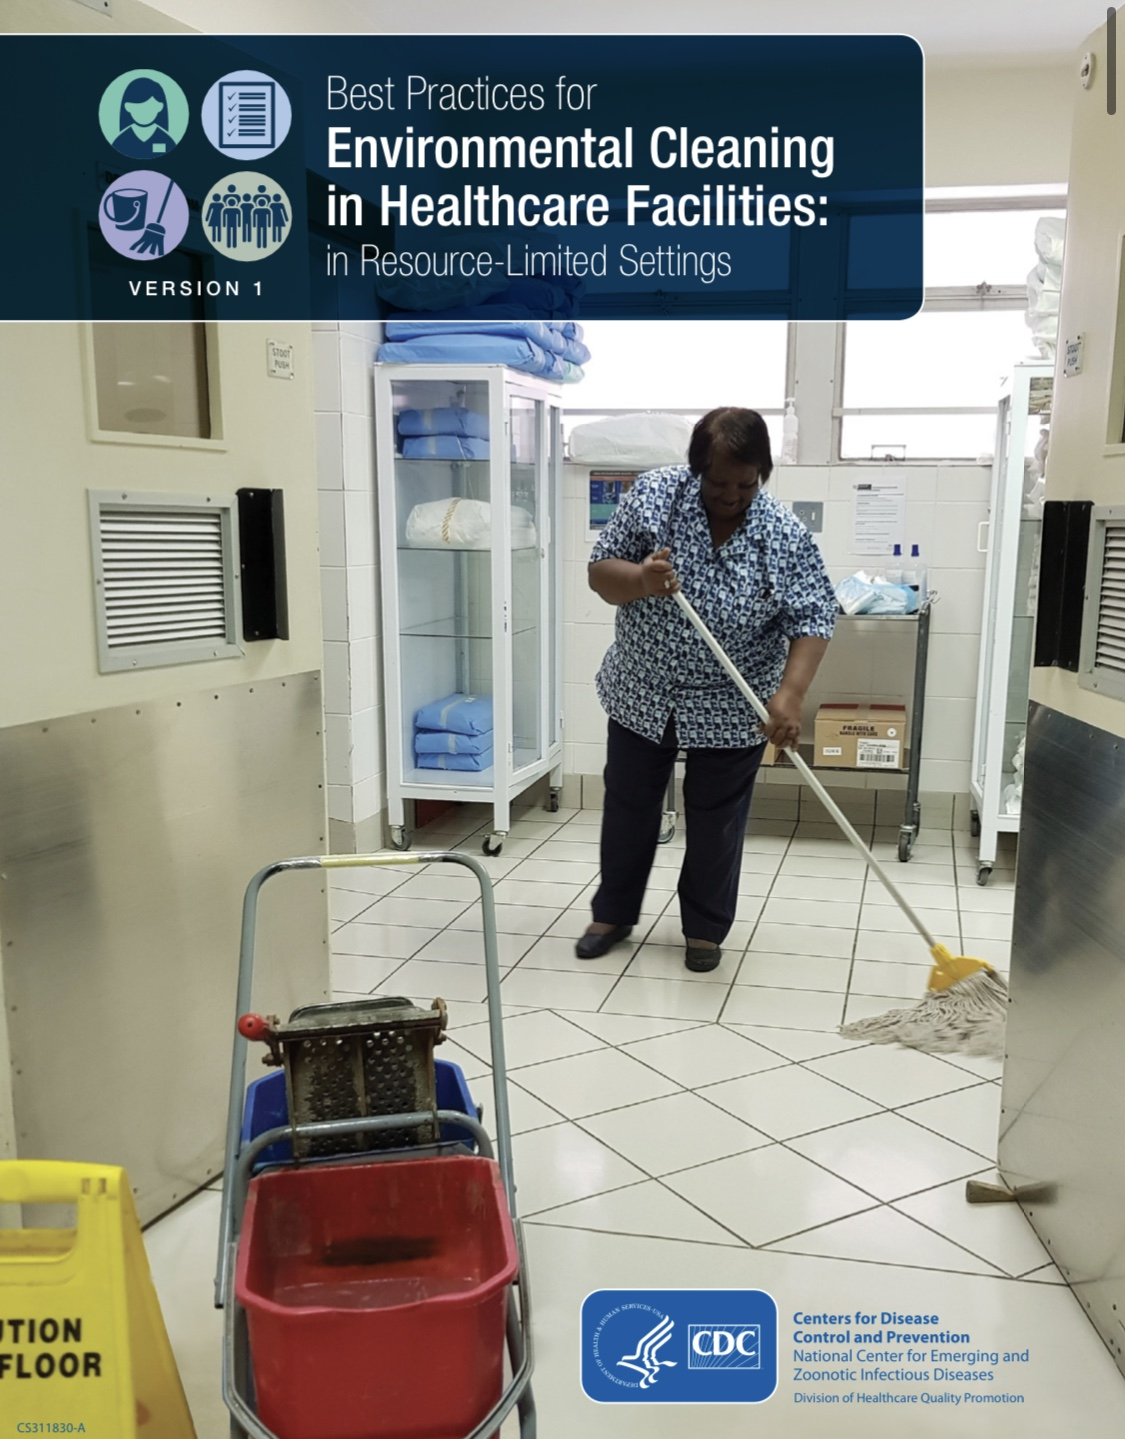 Best Practices for Environmental Cleaning in Healthcare Facilities